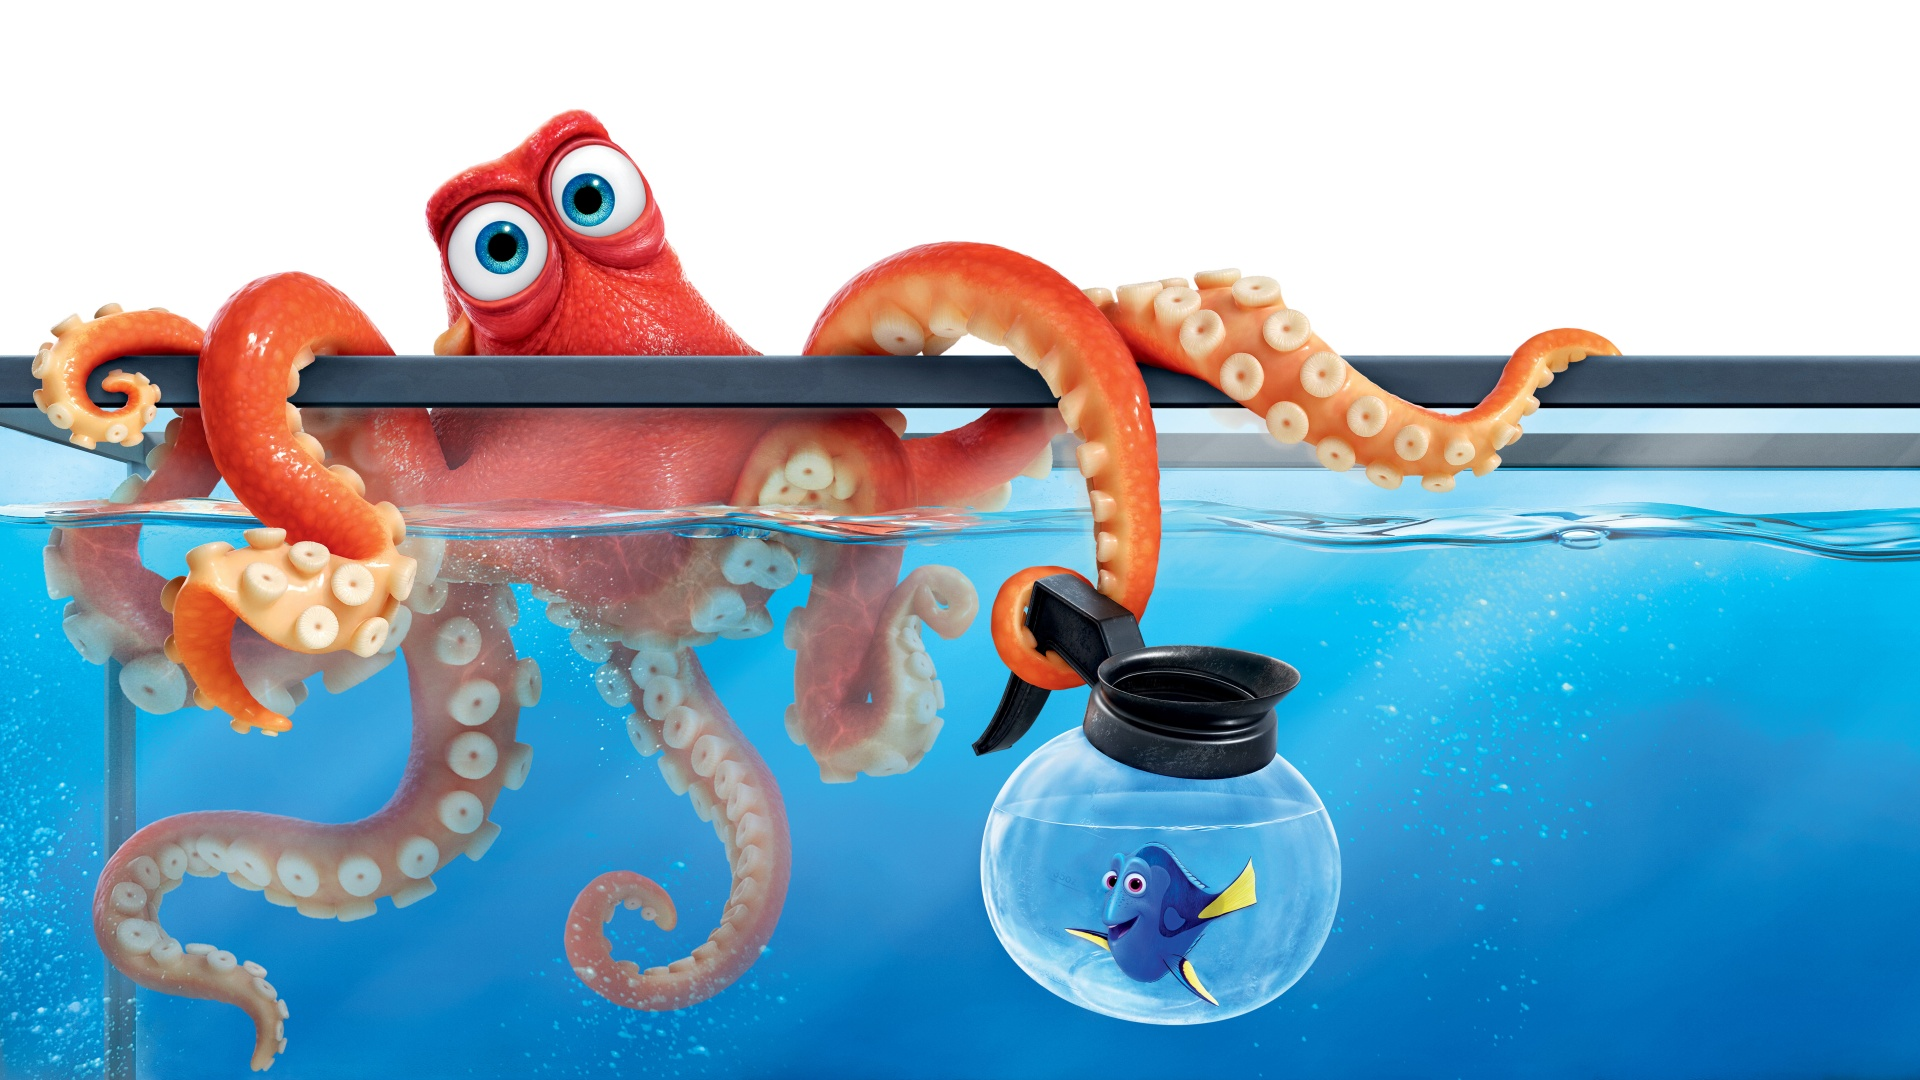 3d Animation Wallpaper Download Finding Dory Hank Octopus Wallpapers In Jpg Format For